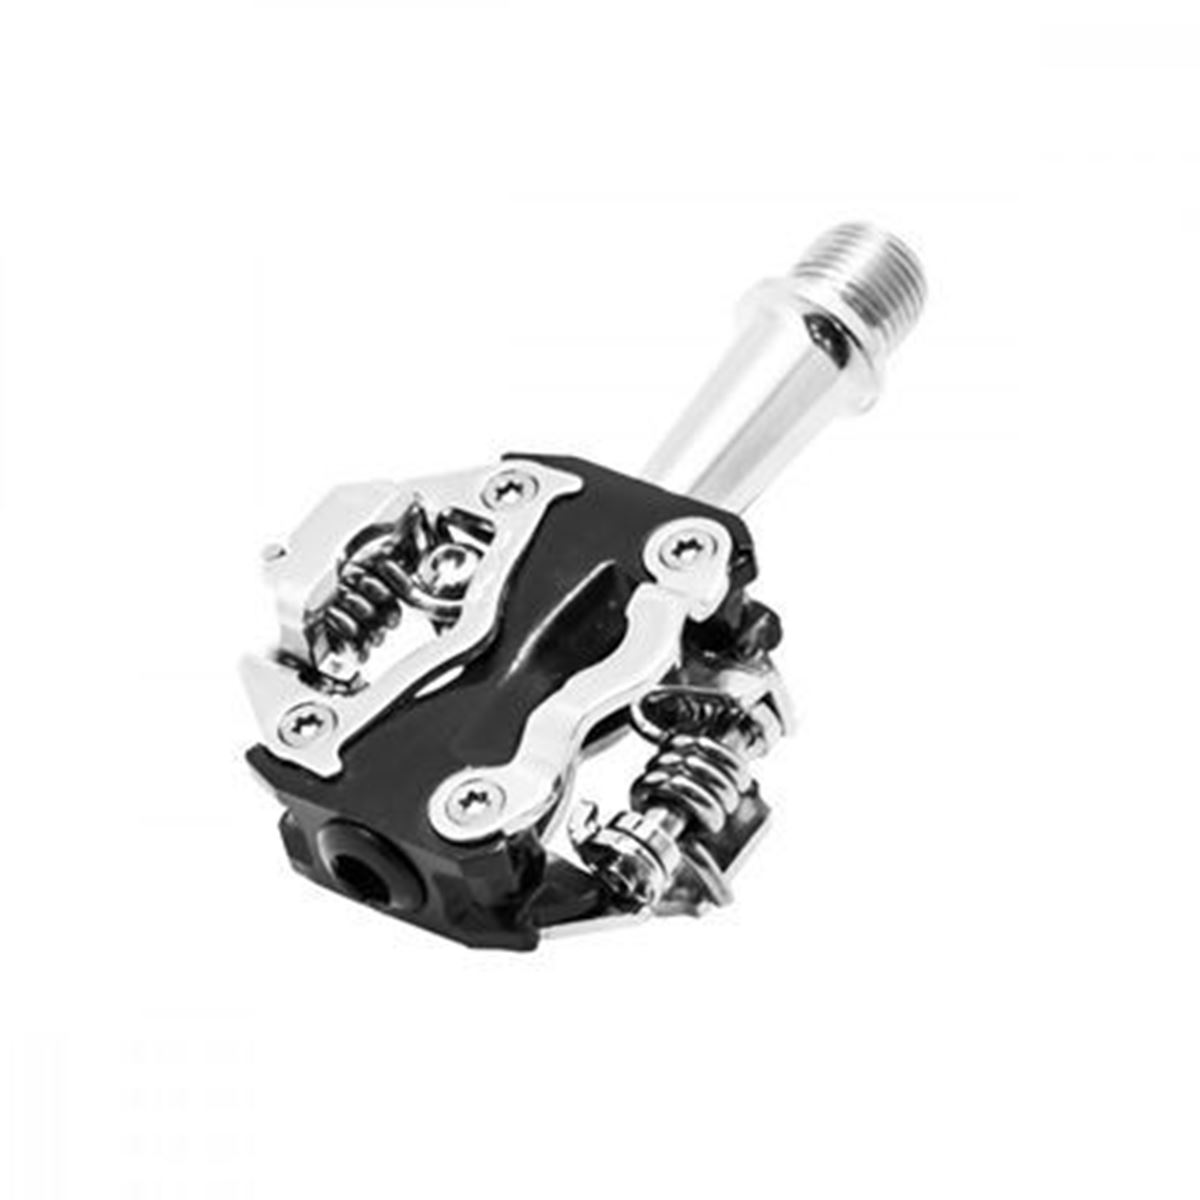 Picture for category Pedals/Cleats